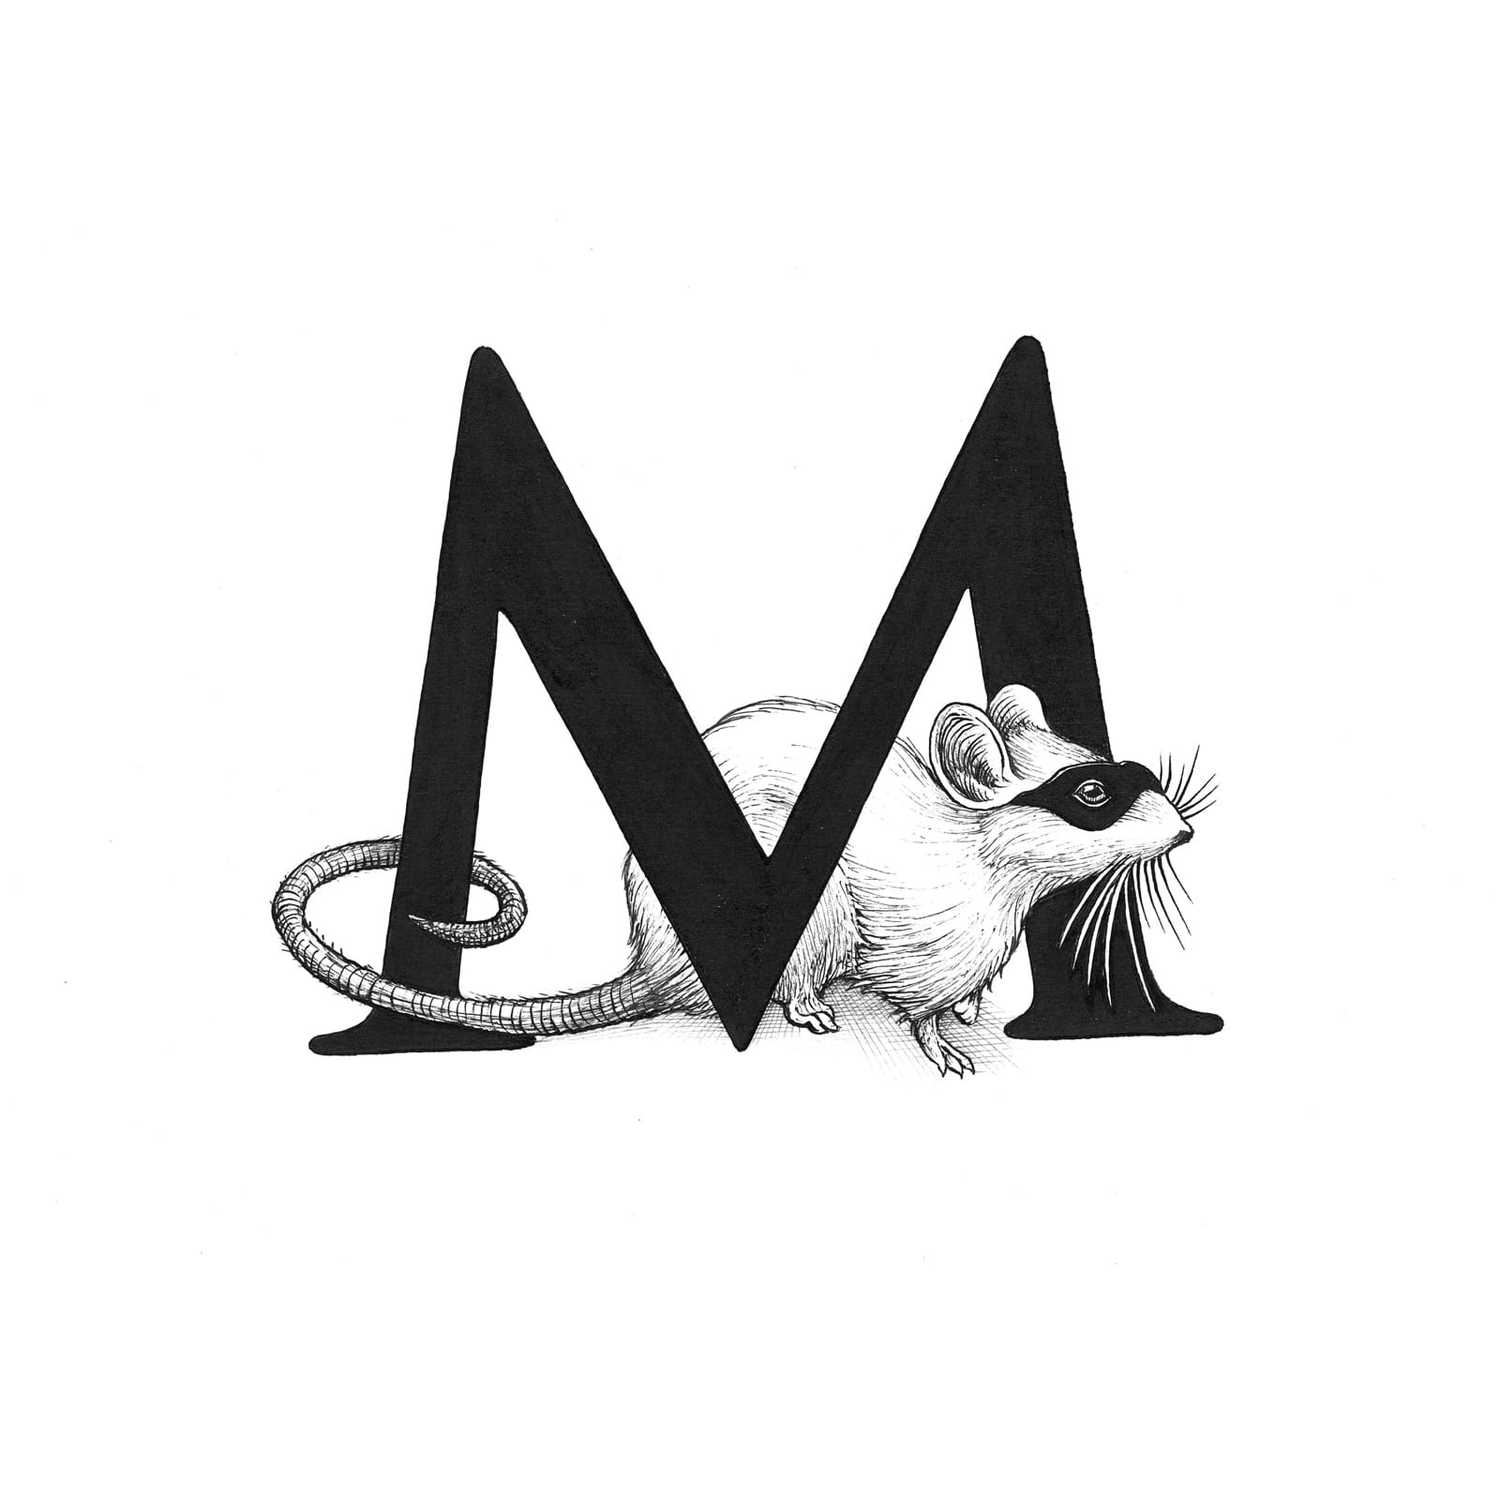 M - Masked Mousie Intricate Ink Print-0